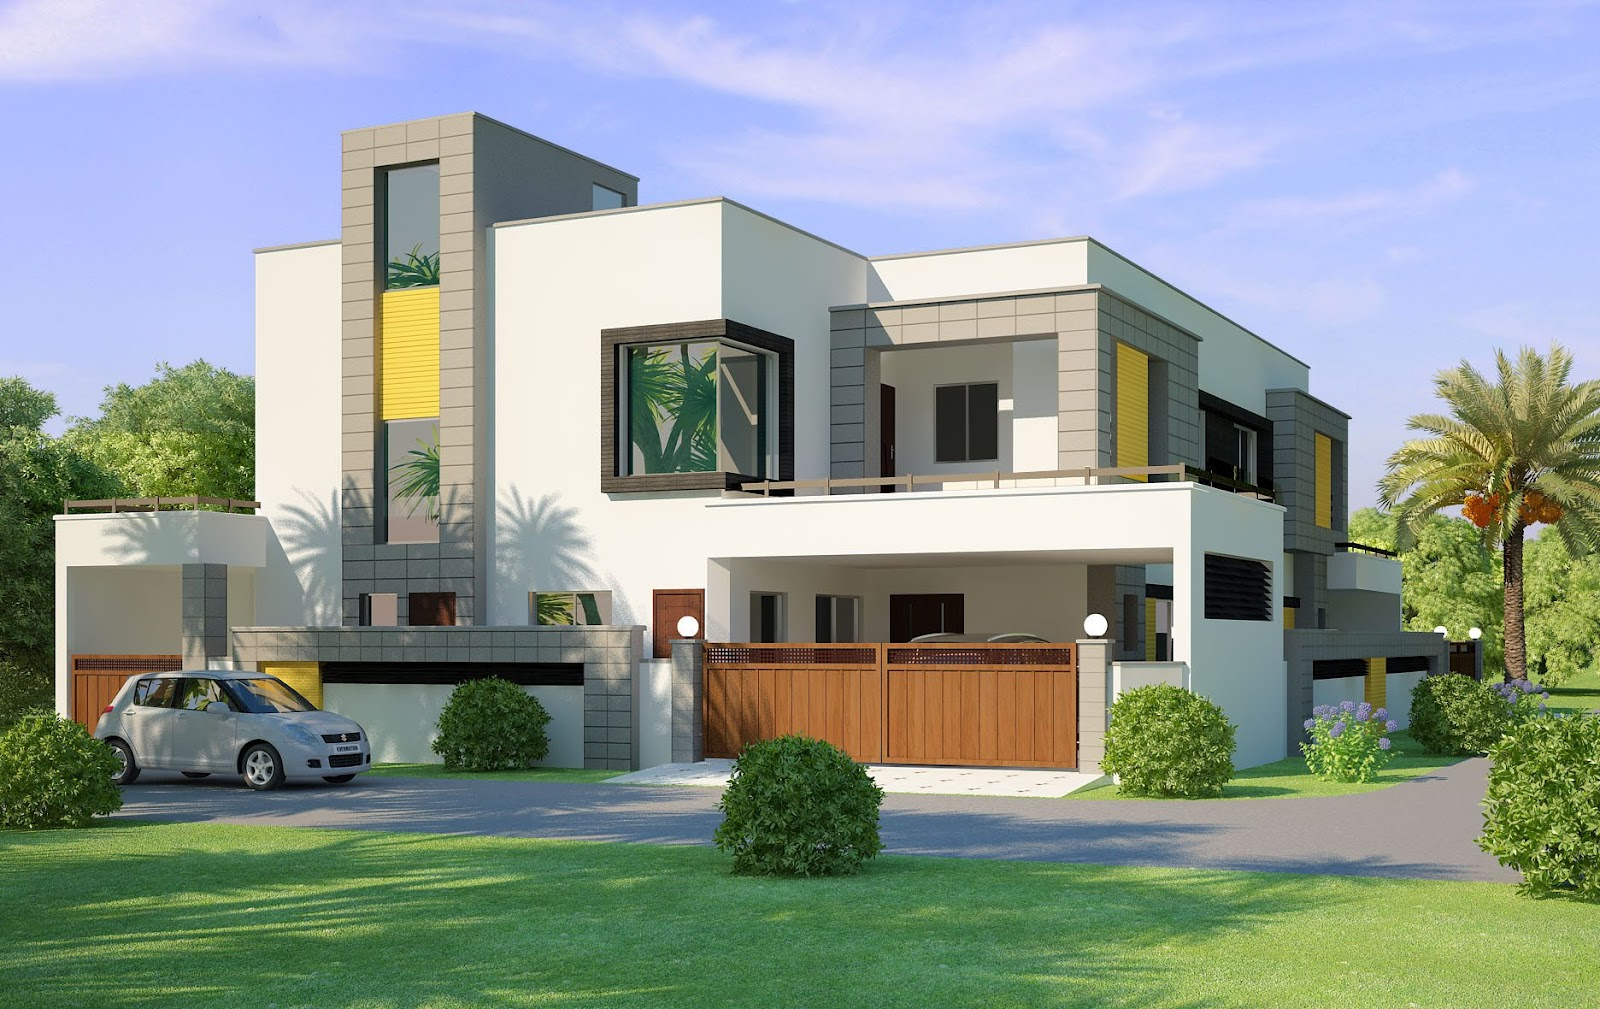 Best front elevation designs 2014 Latest 3d home design